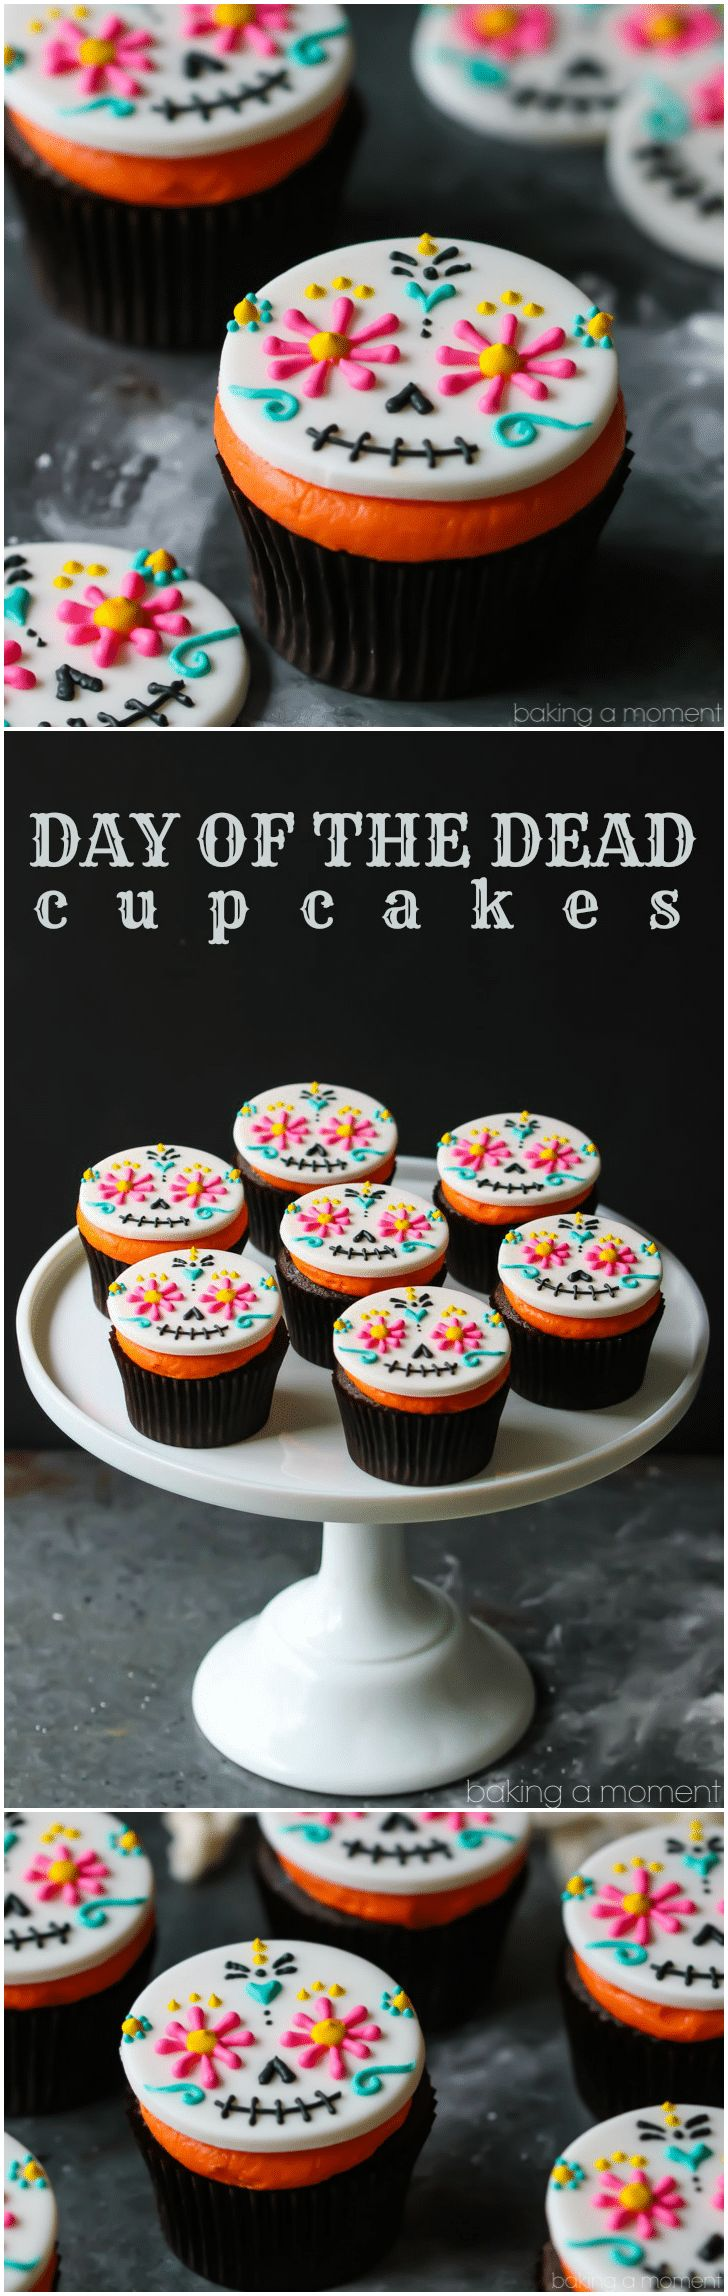 Day of the Dead Cupcakes- colorful fondant topper on a dark chocolate cupcake with bright orange frosting.